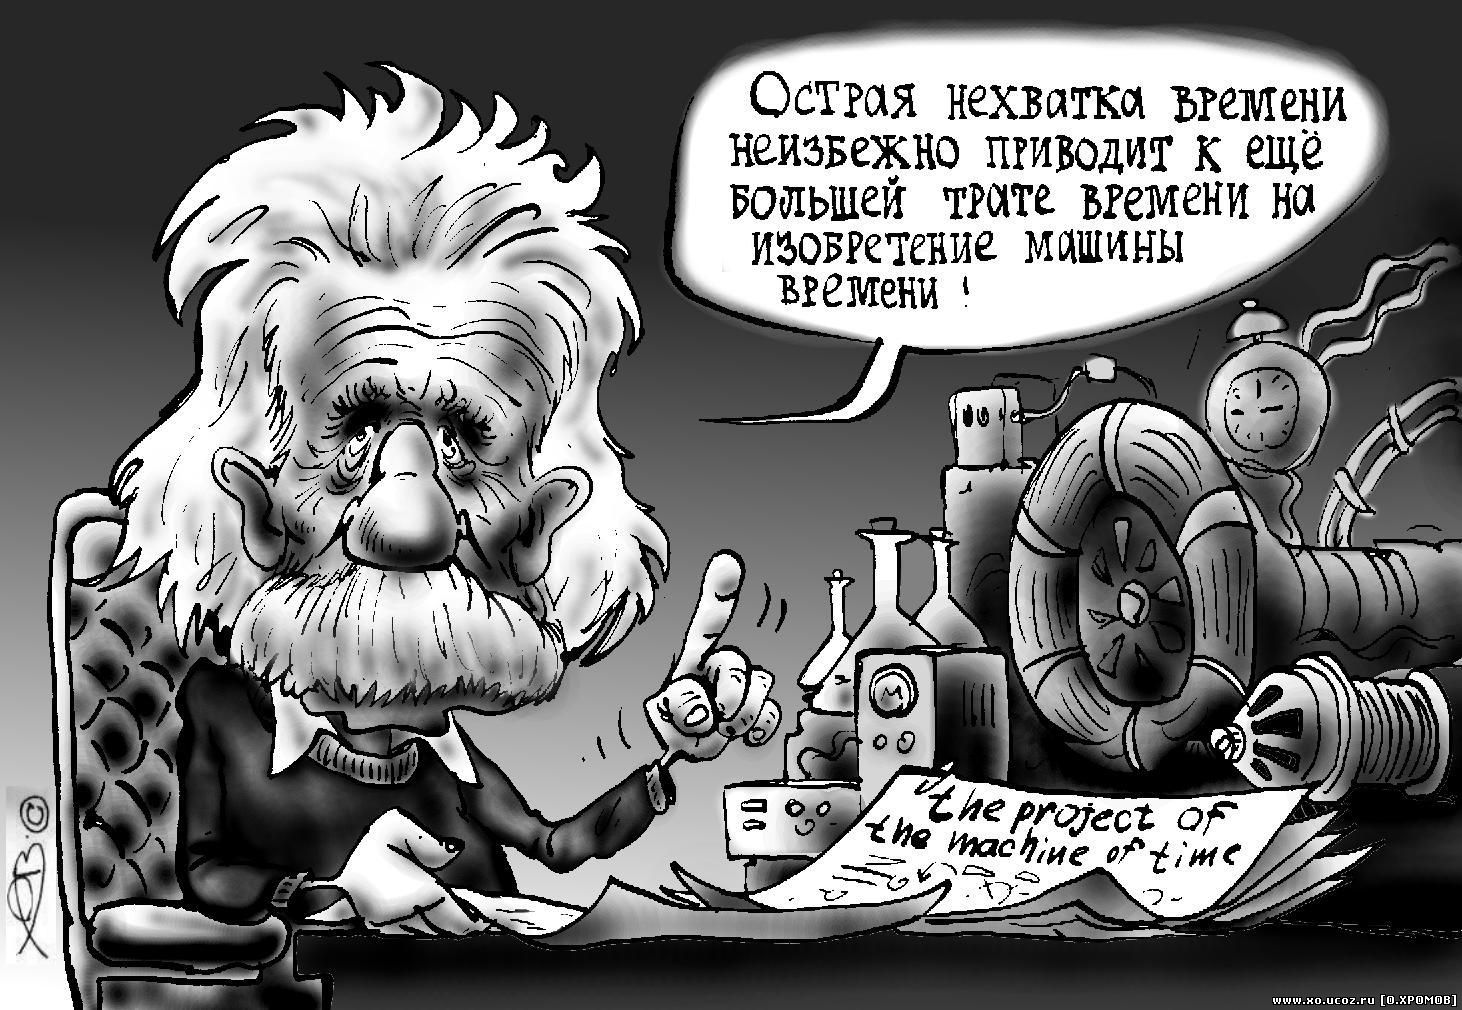 МАШИНА ВРЕМЕНИ / TIME MACHINE caricature / карикатура / альберт эйнштейн Albert Einstein / карикатура cartoon caricature